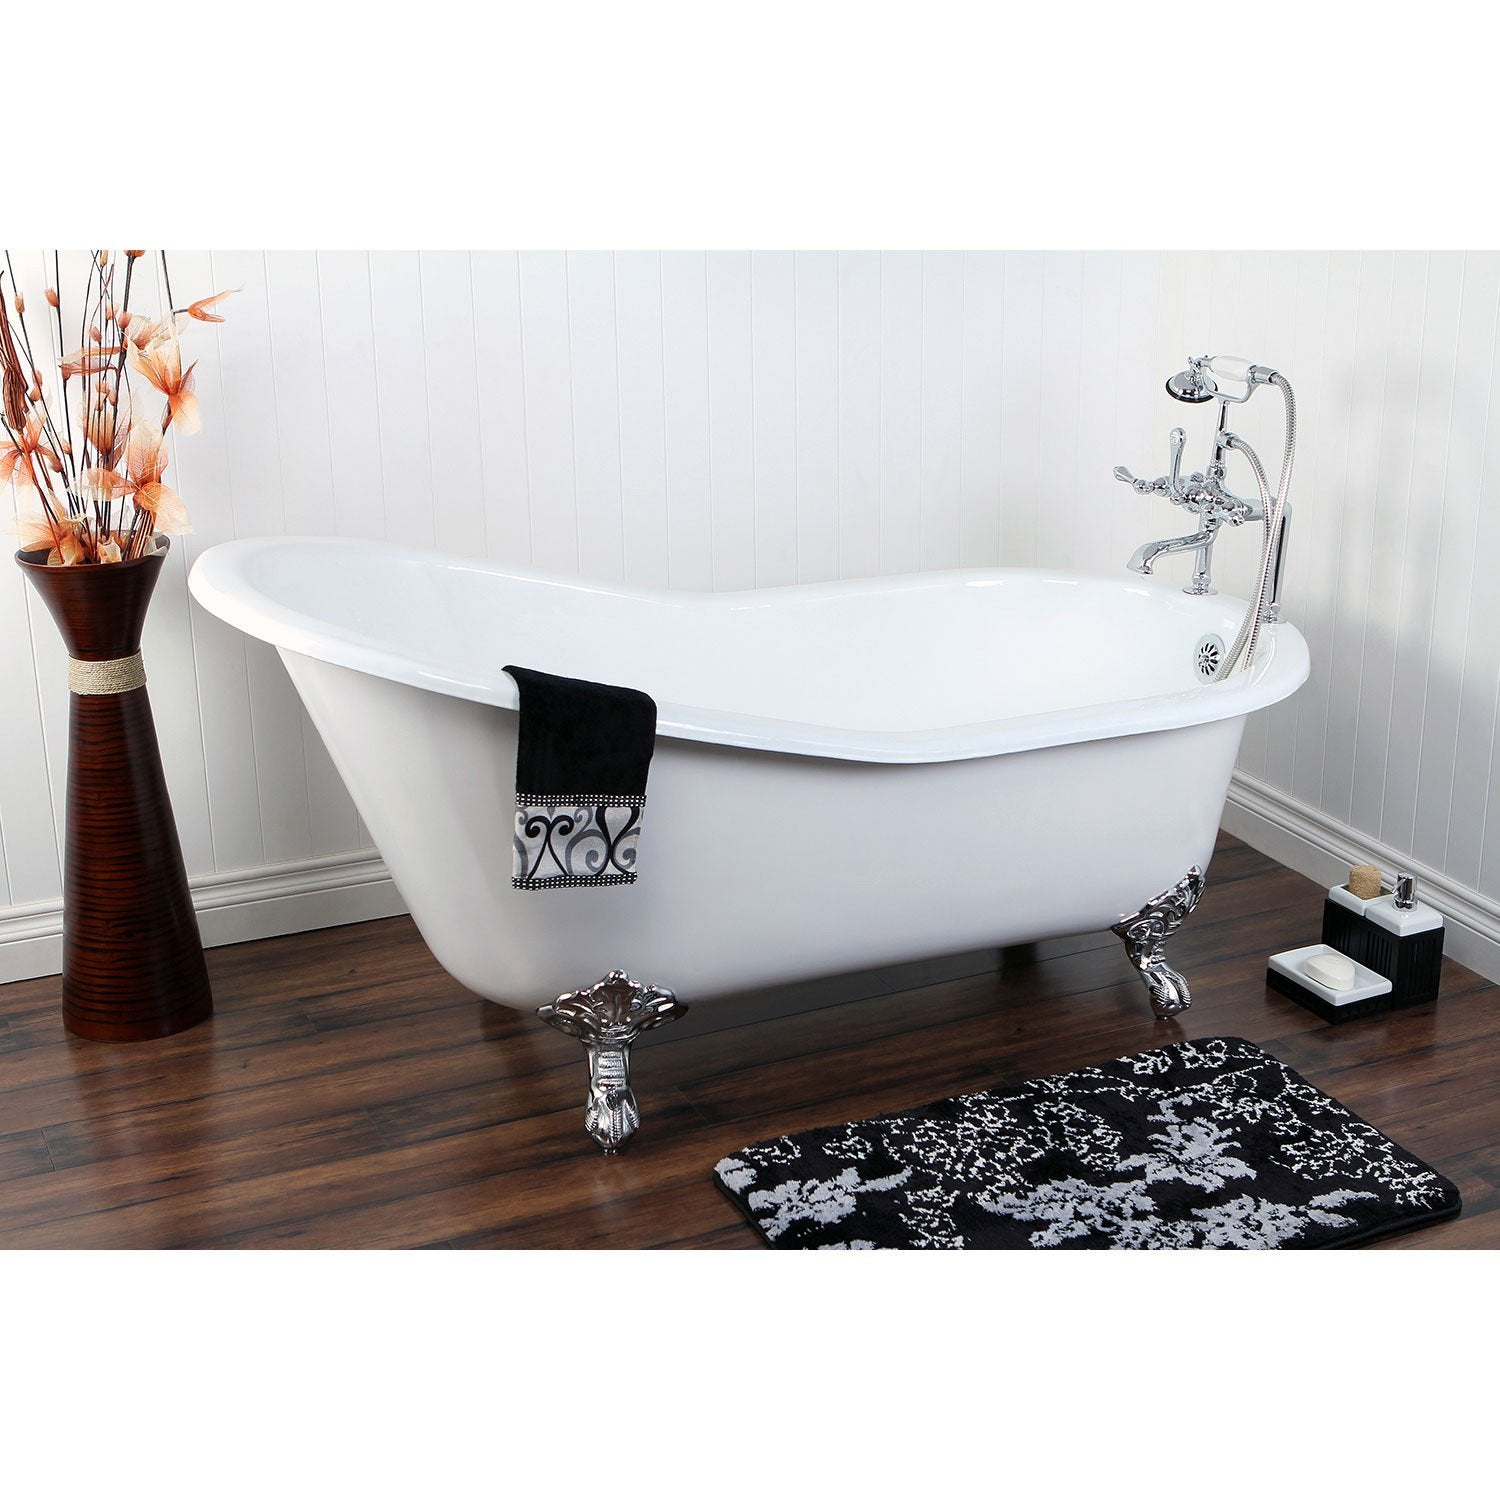 "61"" Cast Iron Slipper Clawfoot Tub with Chrome Faucet and Hardware Package CTP09"